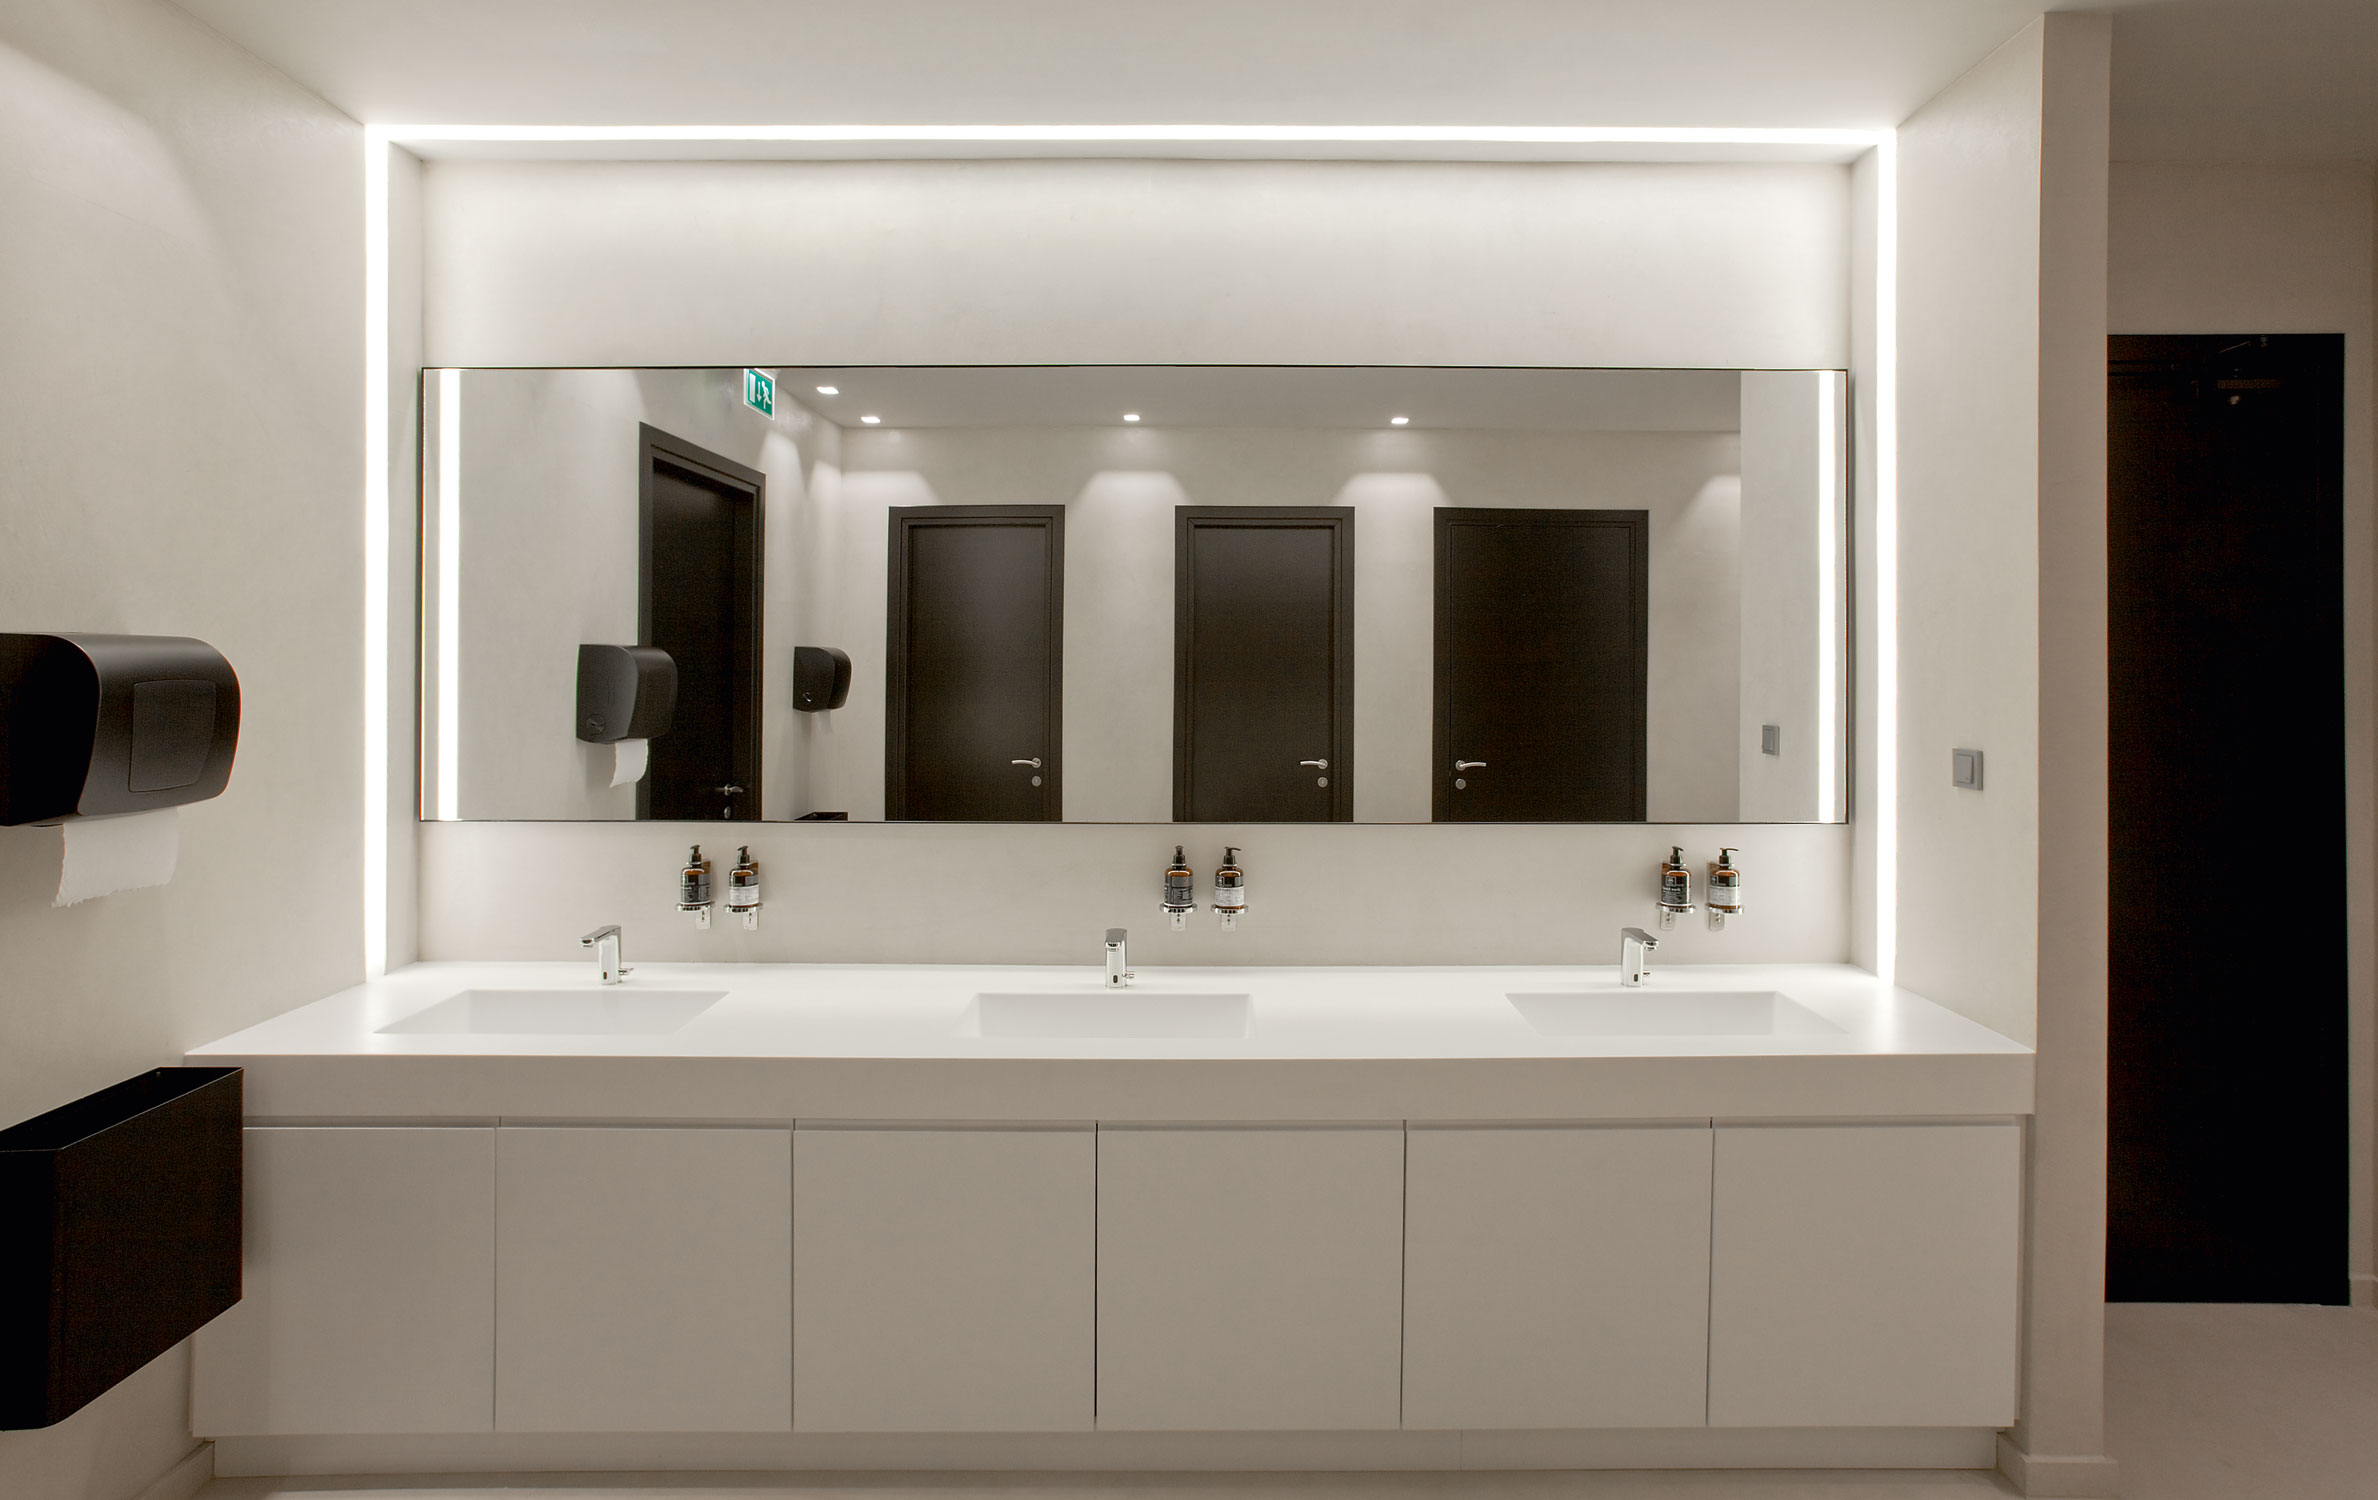 Delta light fixtures bathroom my web value tennis club athens gr project delta light aloadofball Image collections